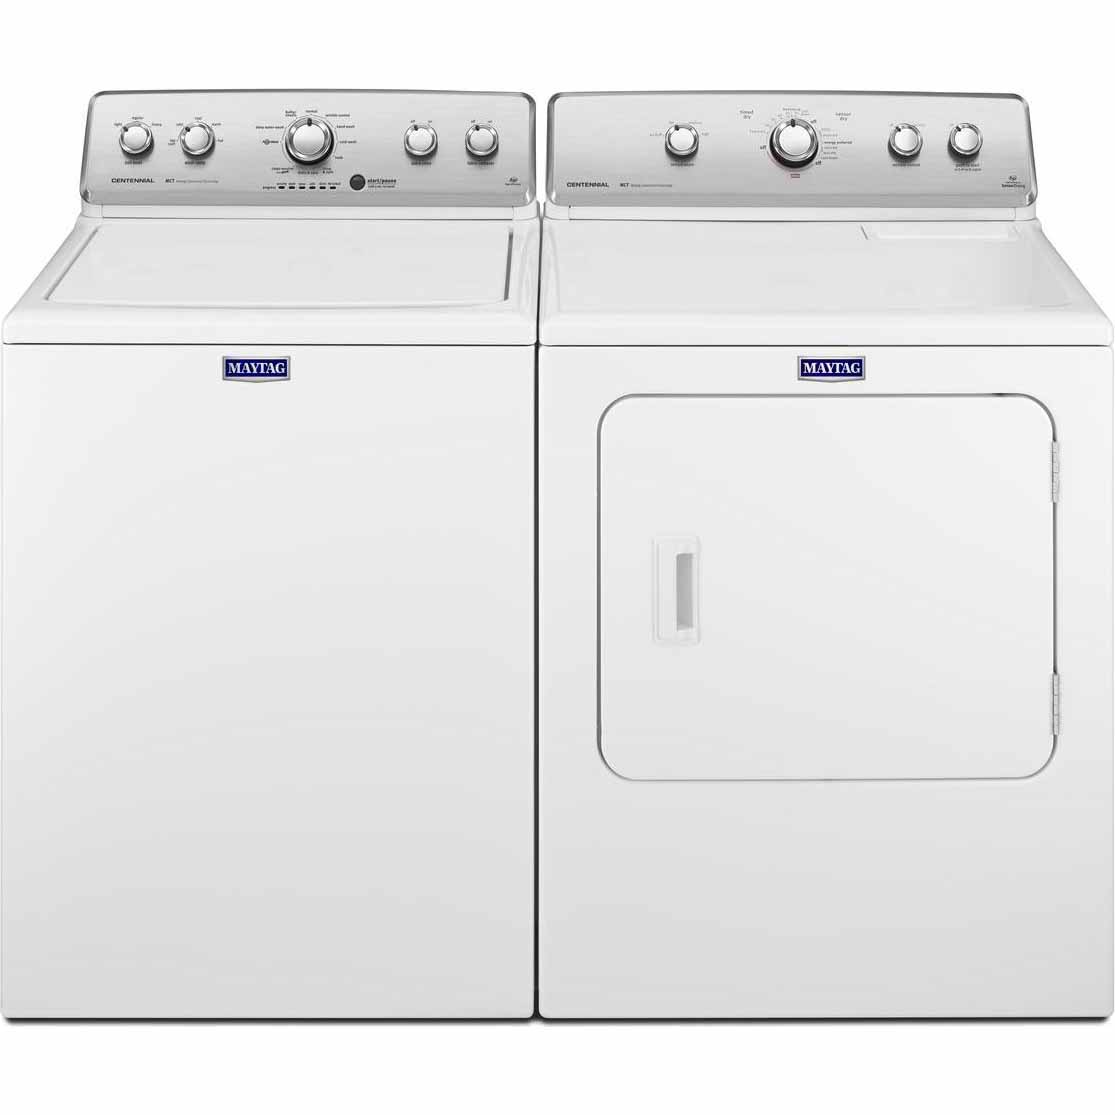 Maytag MGDC555DW 7.0 cu. ft. Gas Dryer w/ Heavy Duty Motor - White